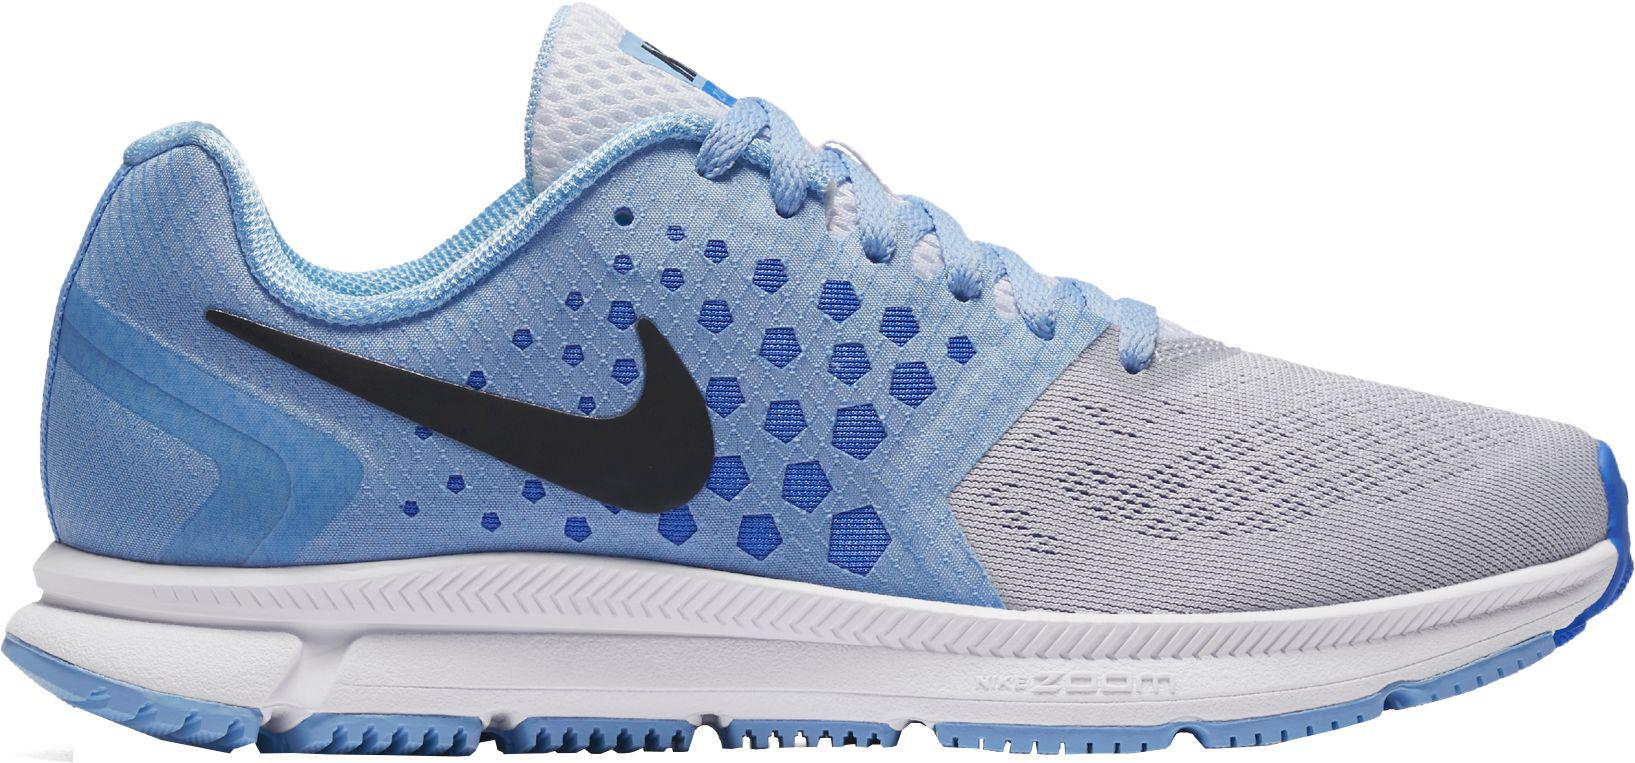 b9394cca731ce Lyst - Nike Air Zoom Span Shield Running Shoes in Blue for Men